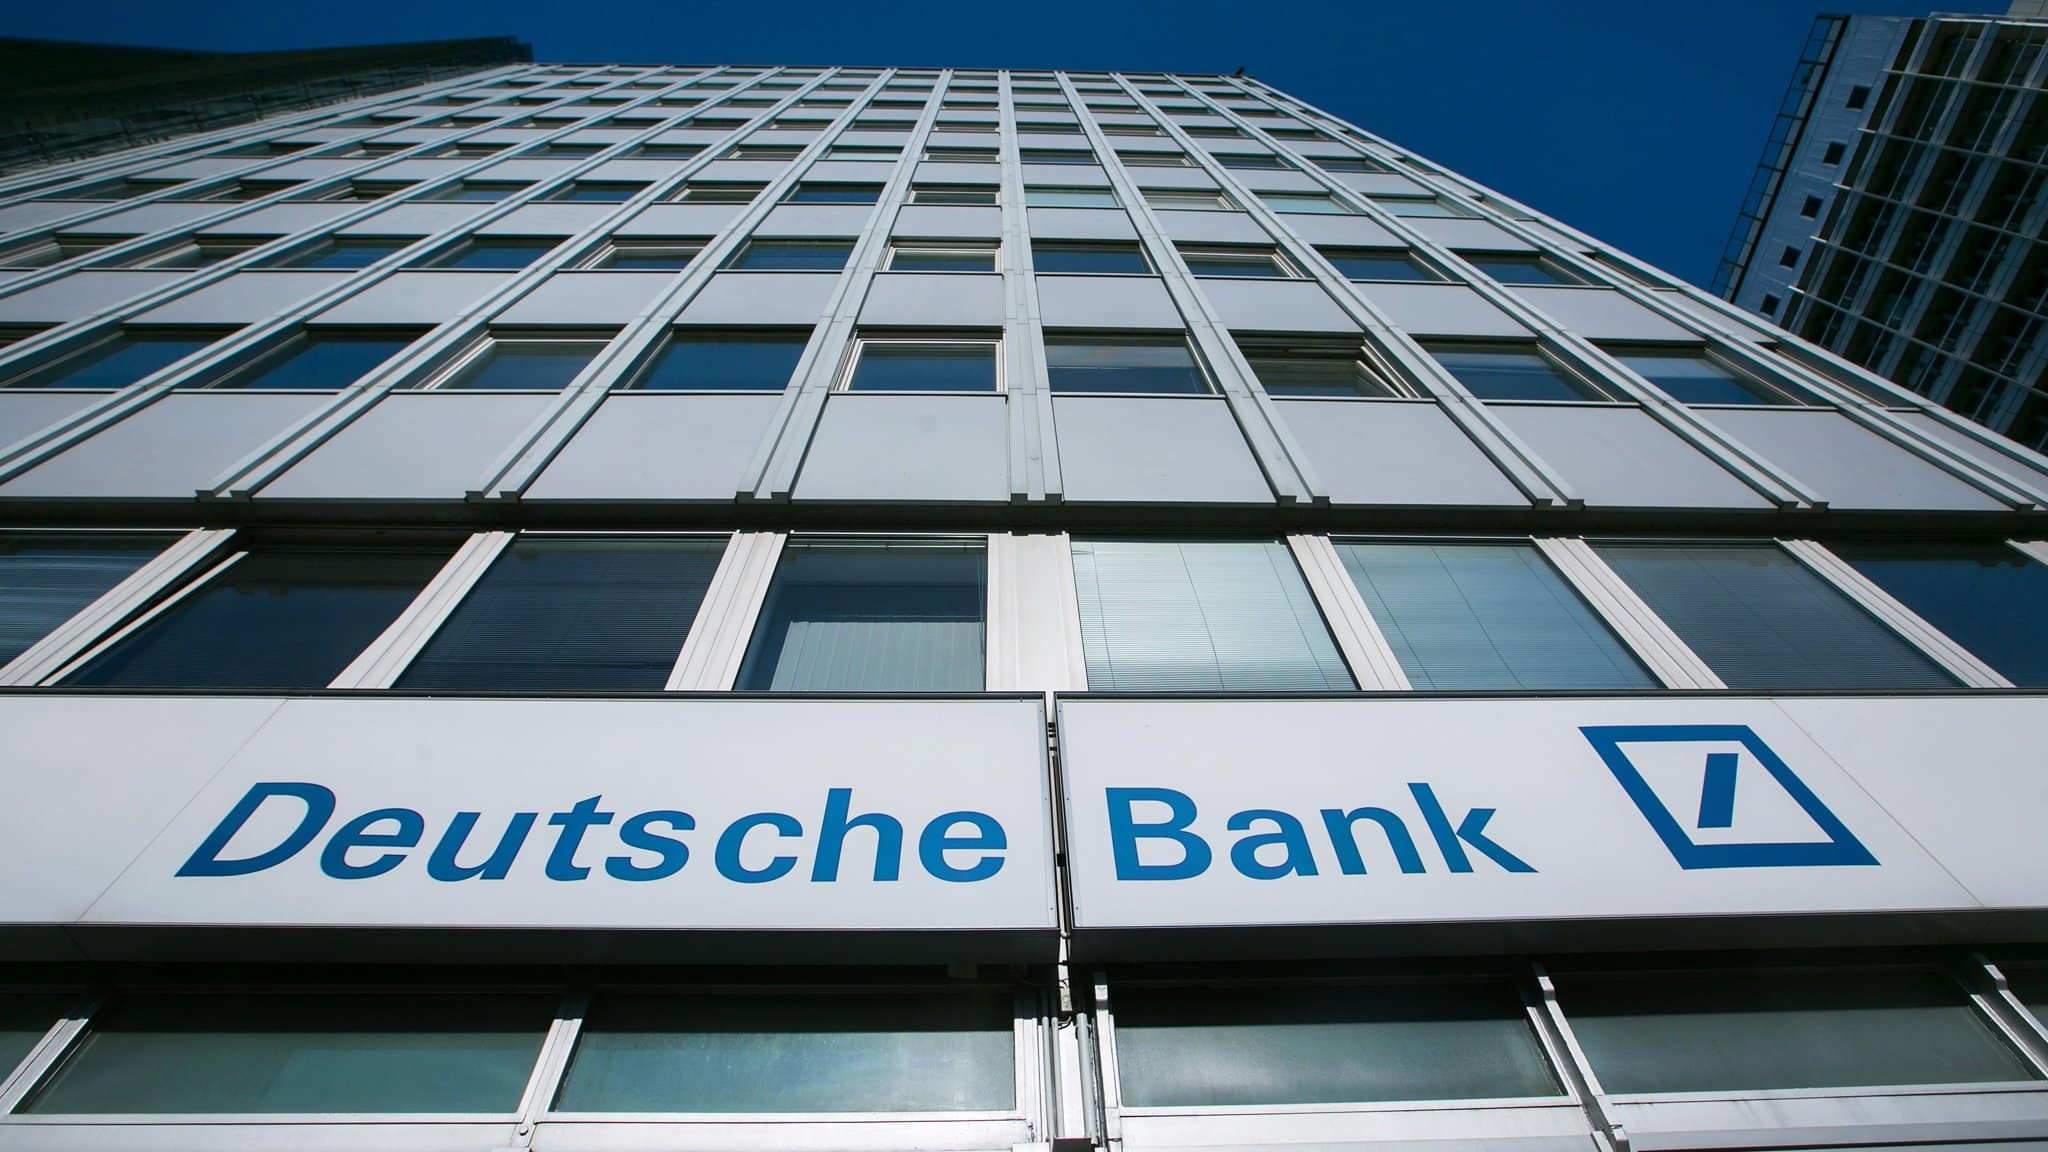 Chairman of Deutsche Bank Against Any Strategy Change